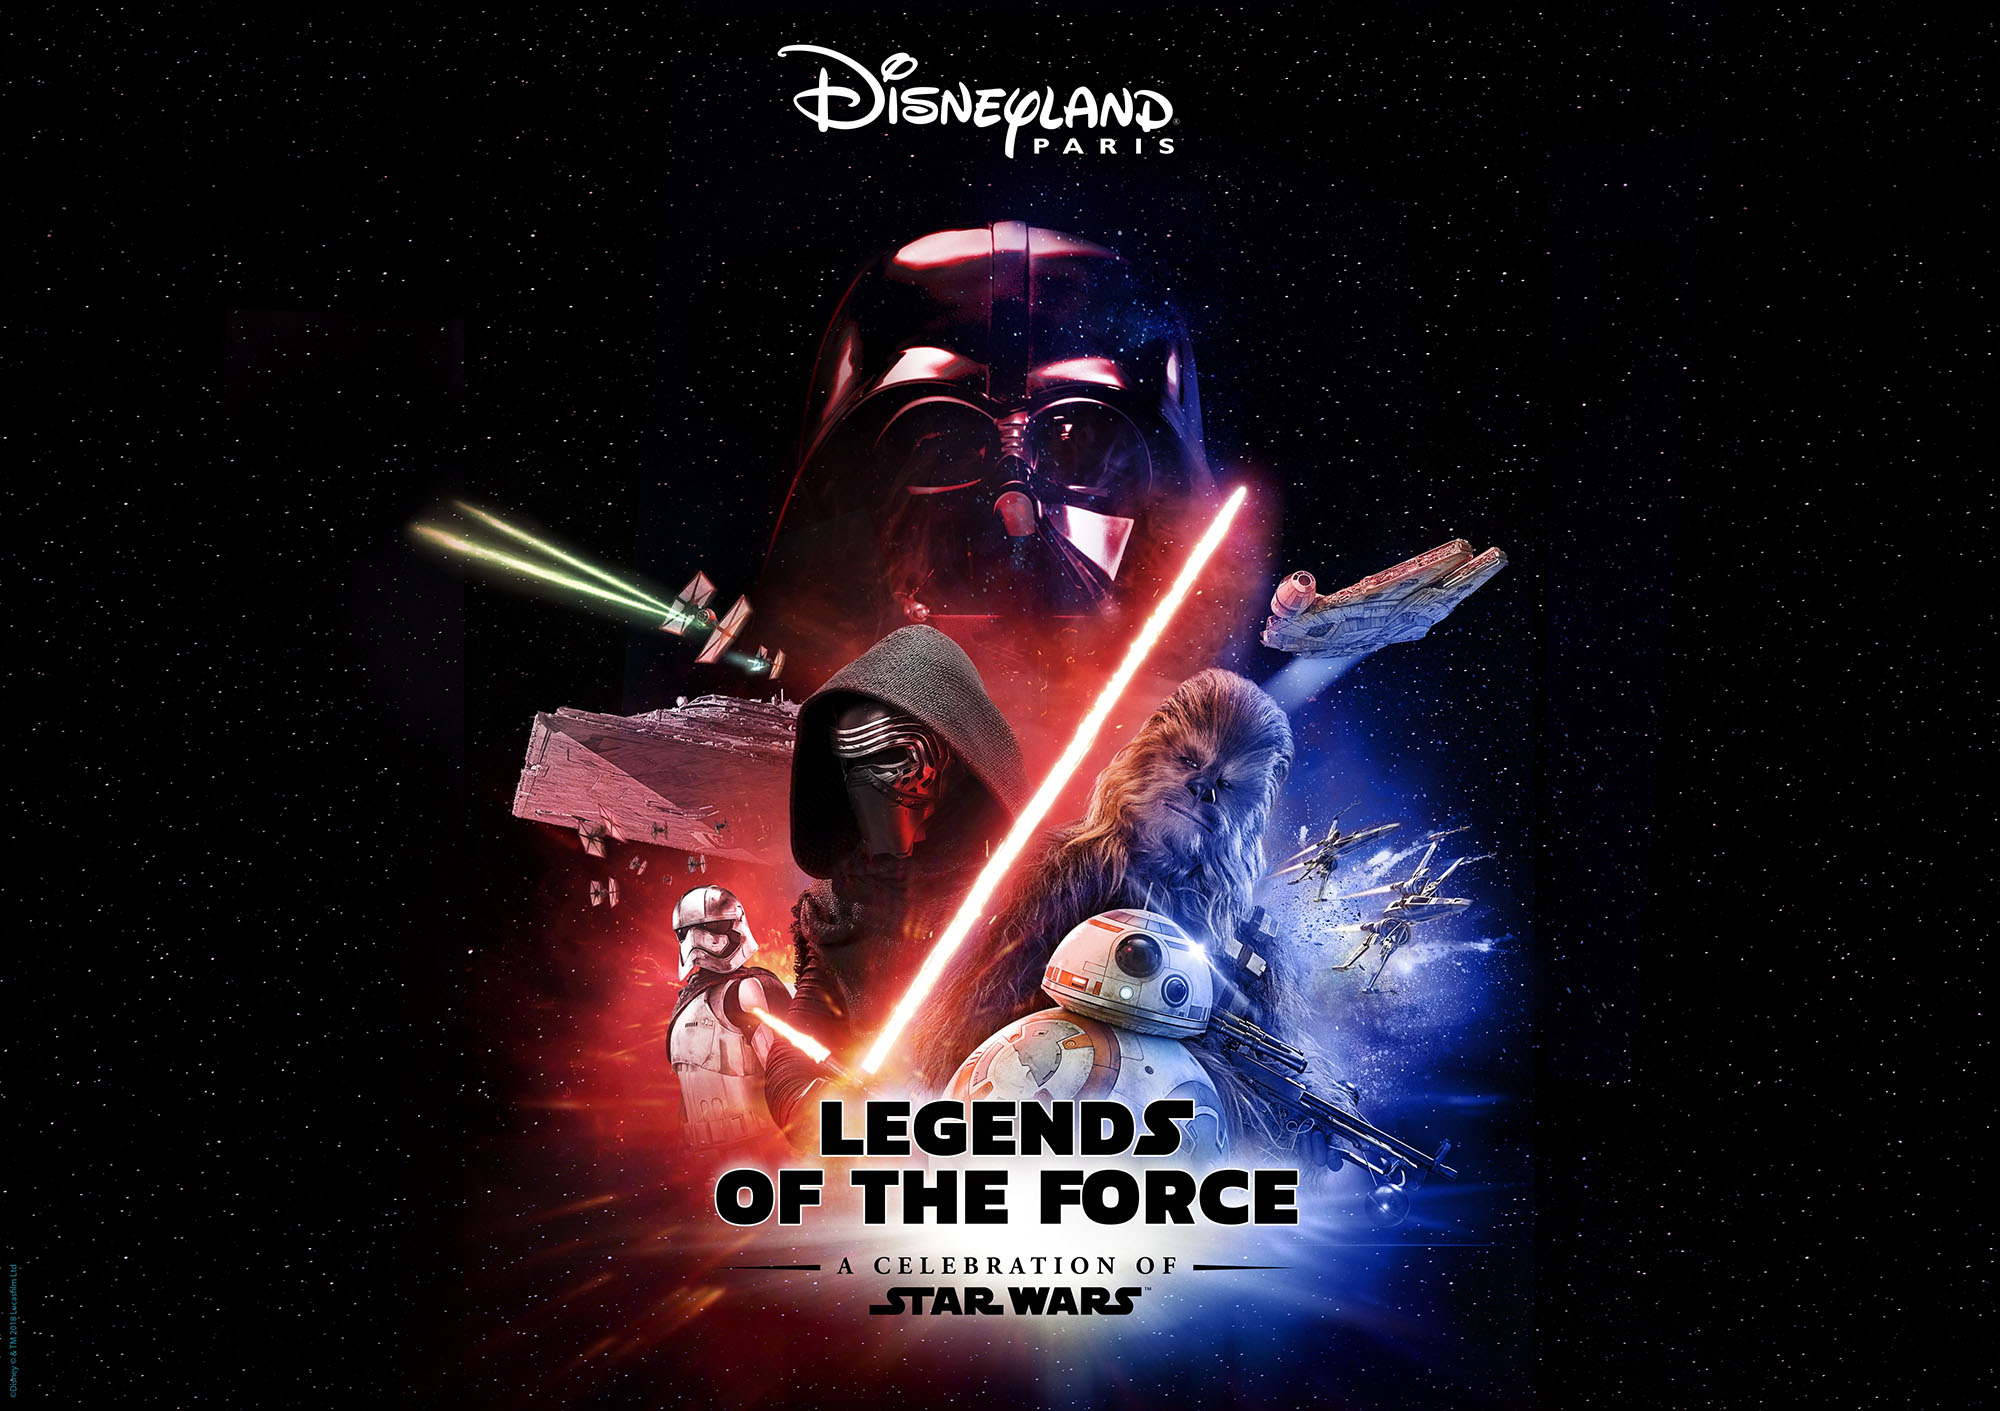 Disneyland Paris Legends of the Force visual